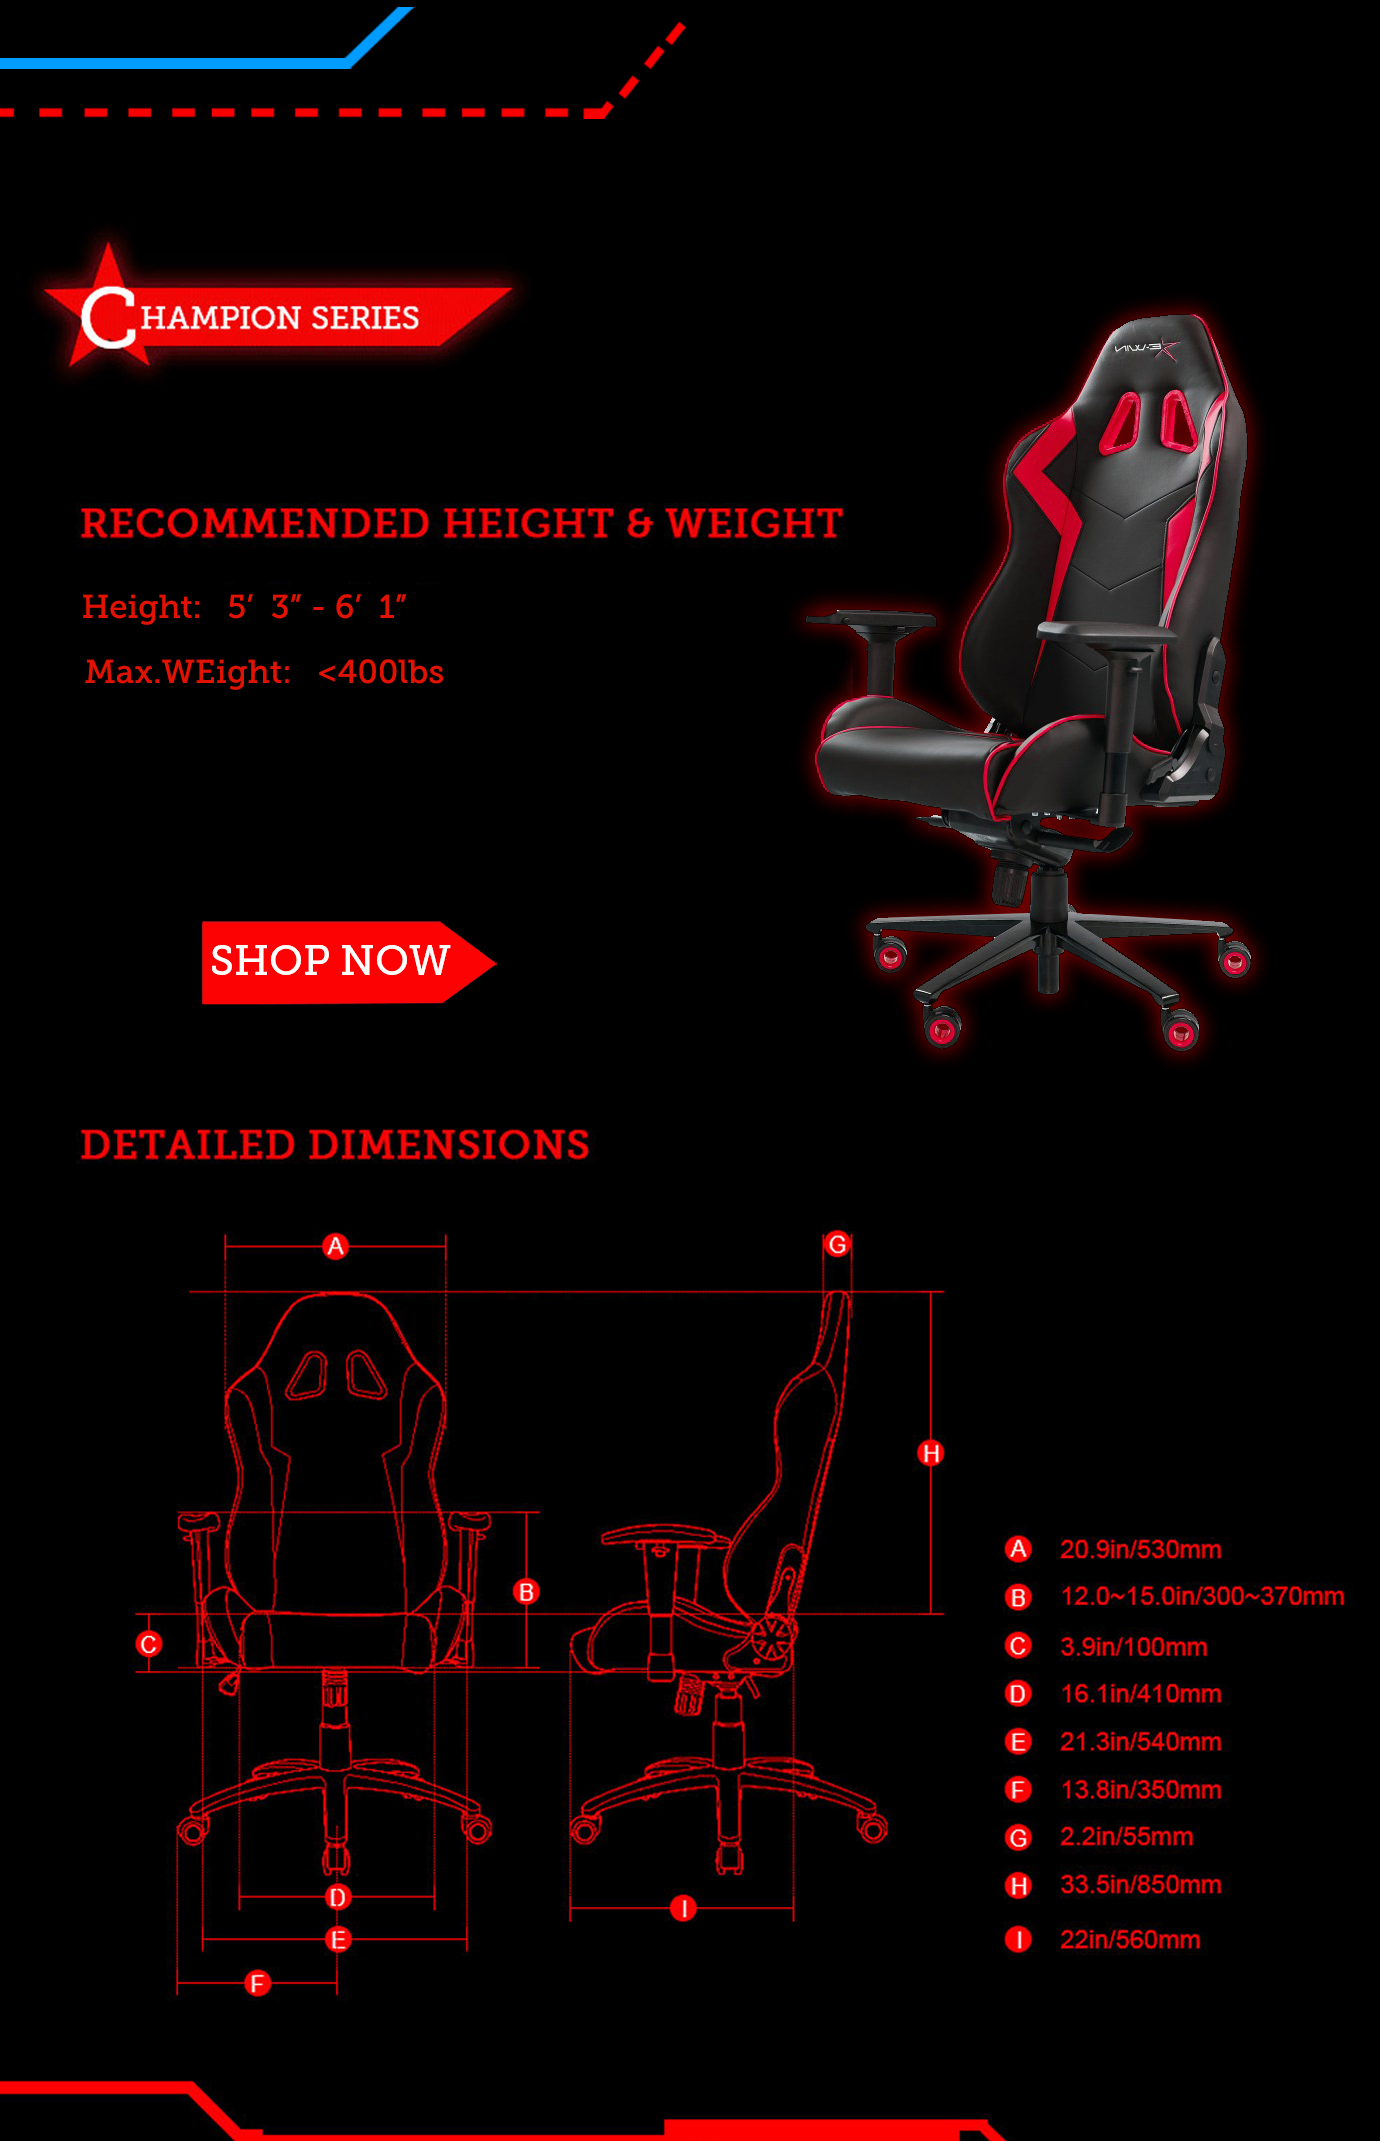 Dimensions of E-WIN Champion Series Gaming Chairs